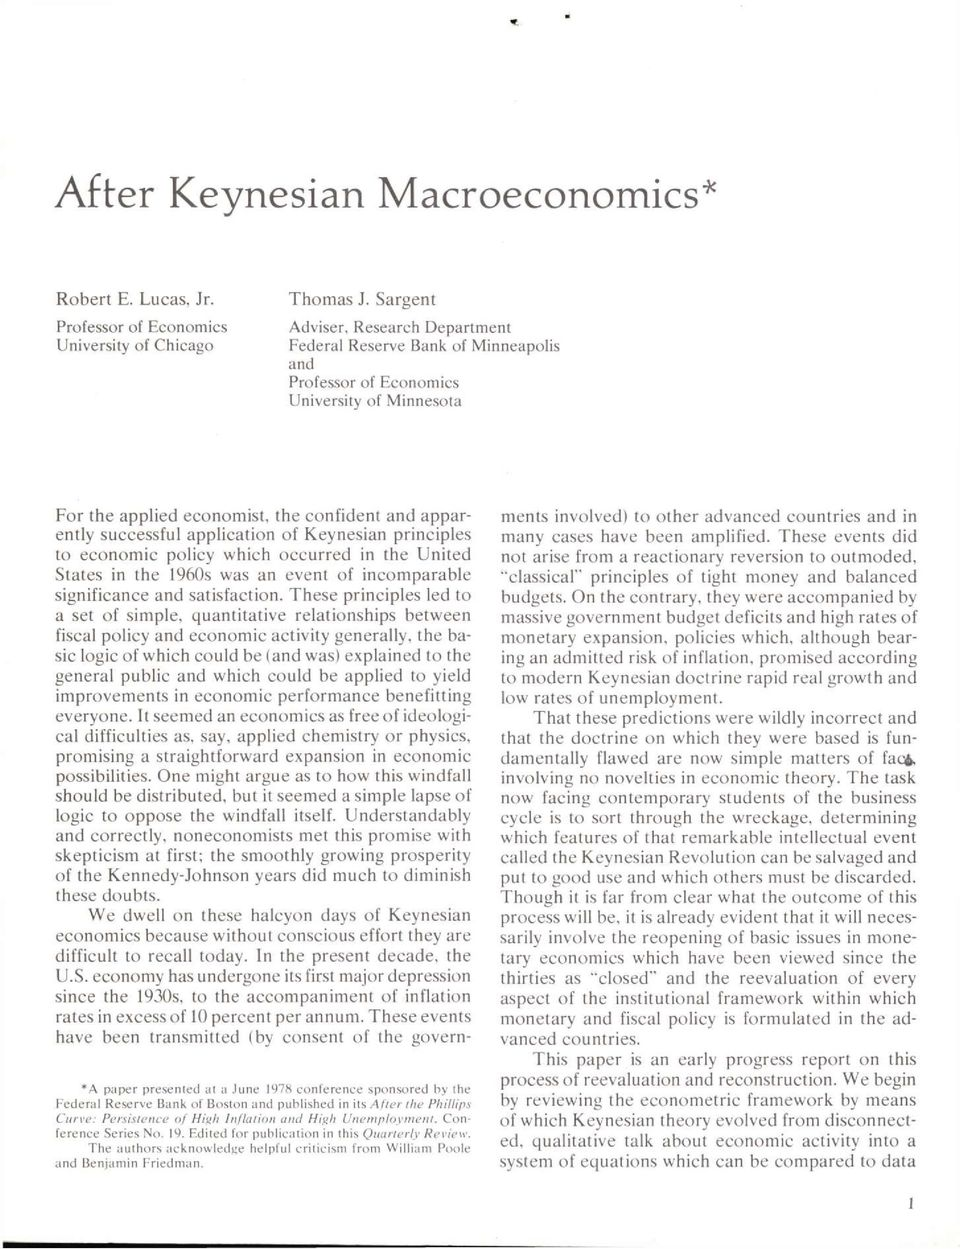 application of Keynesian principles to economic policy which occurred in the United States in the 1960s was an event of incomparable significance and satisfaction.